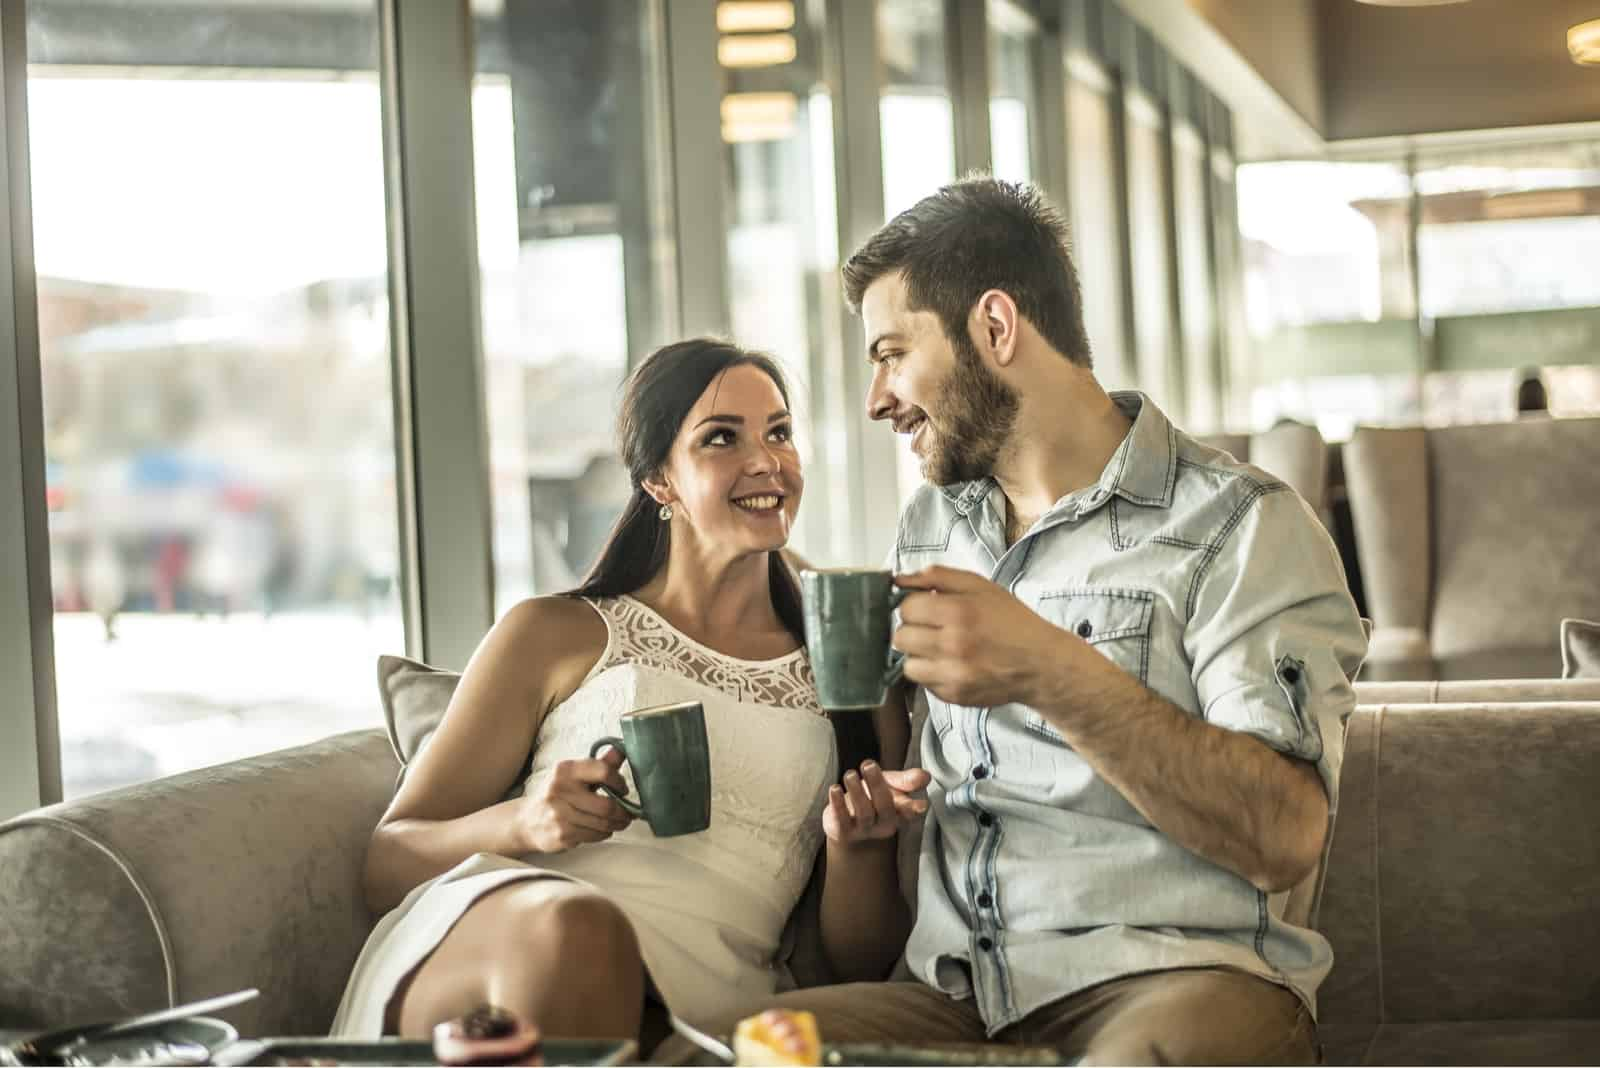 man and woman talking while holding green mugs in cafe